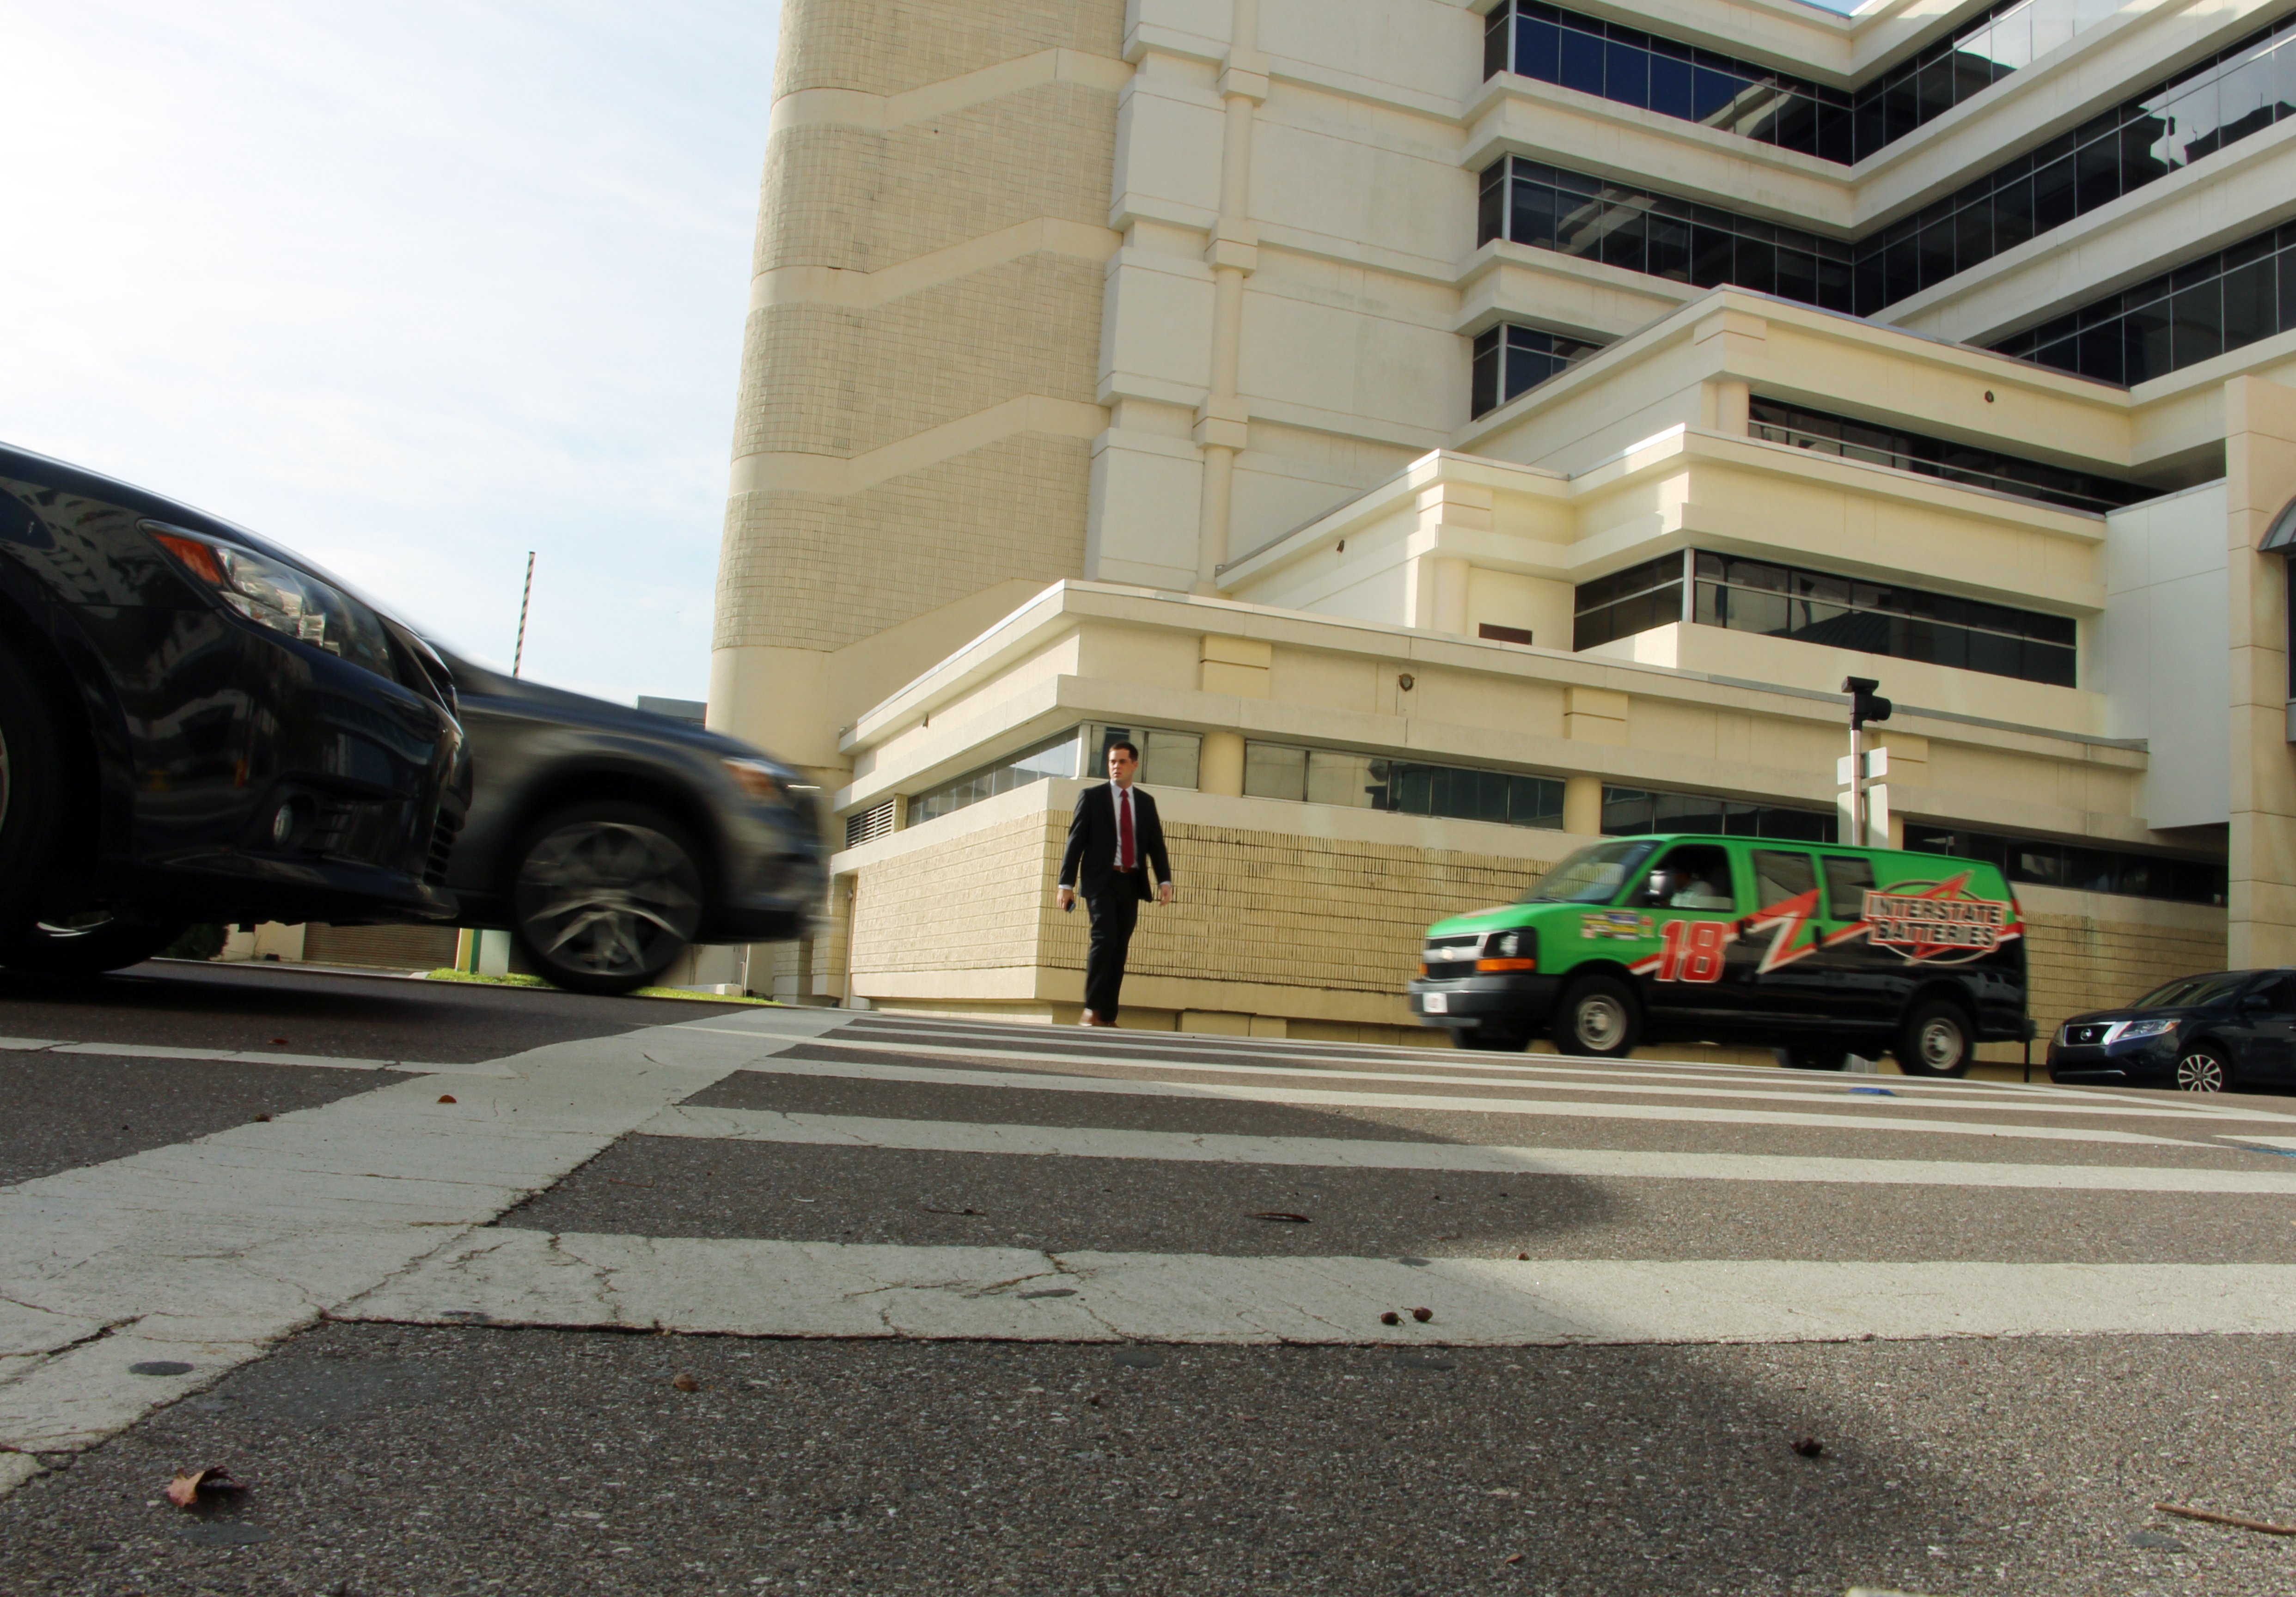 CV technology at a crosswalk at the Hillsborough County Courthouse will broadcast pedestrian presence alerts to CVs in the vicinity.